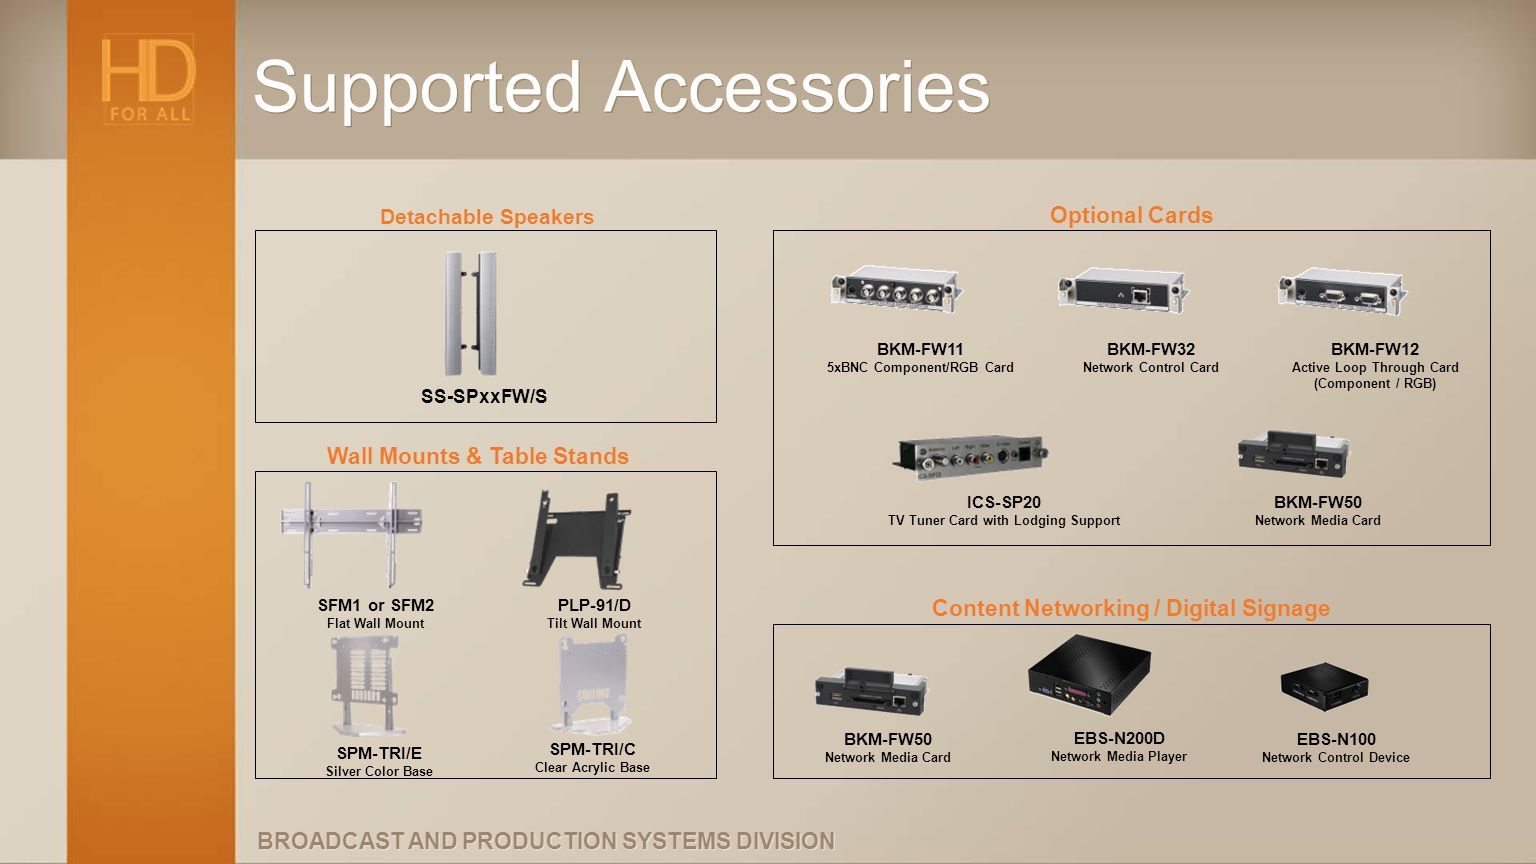 Supported Accessories